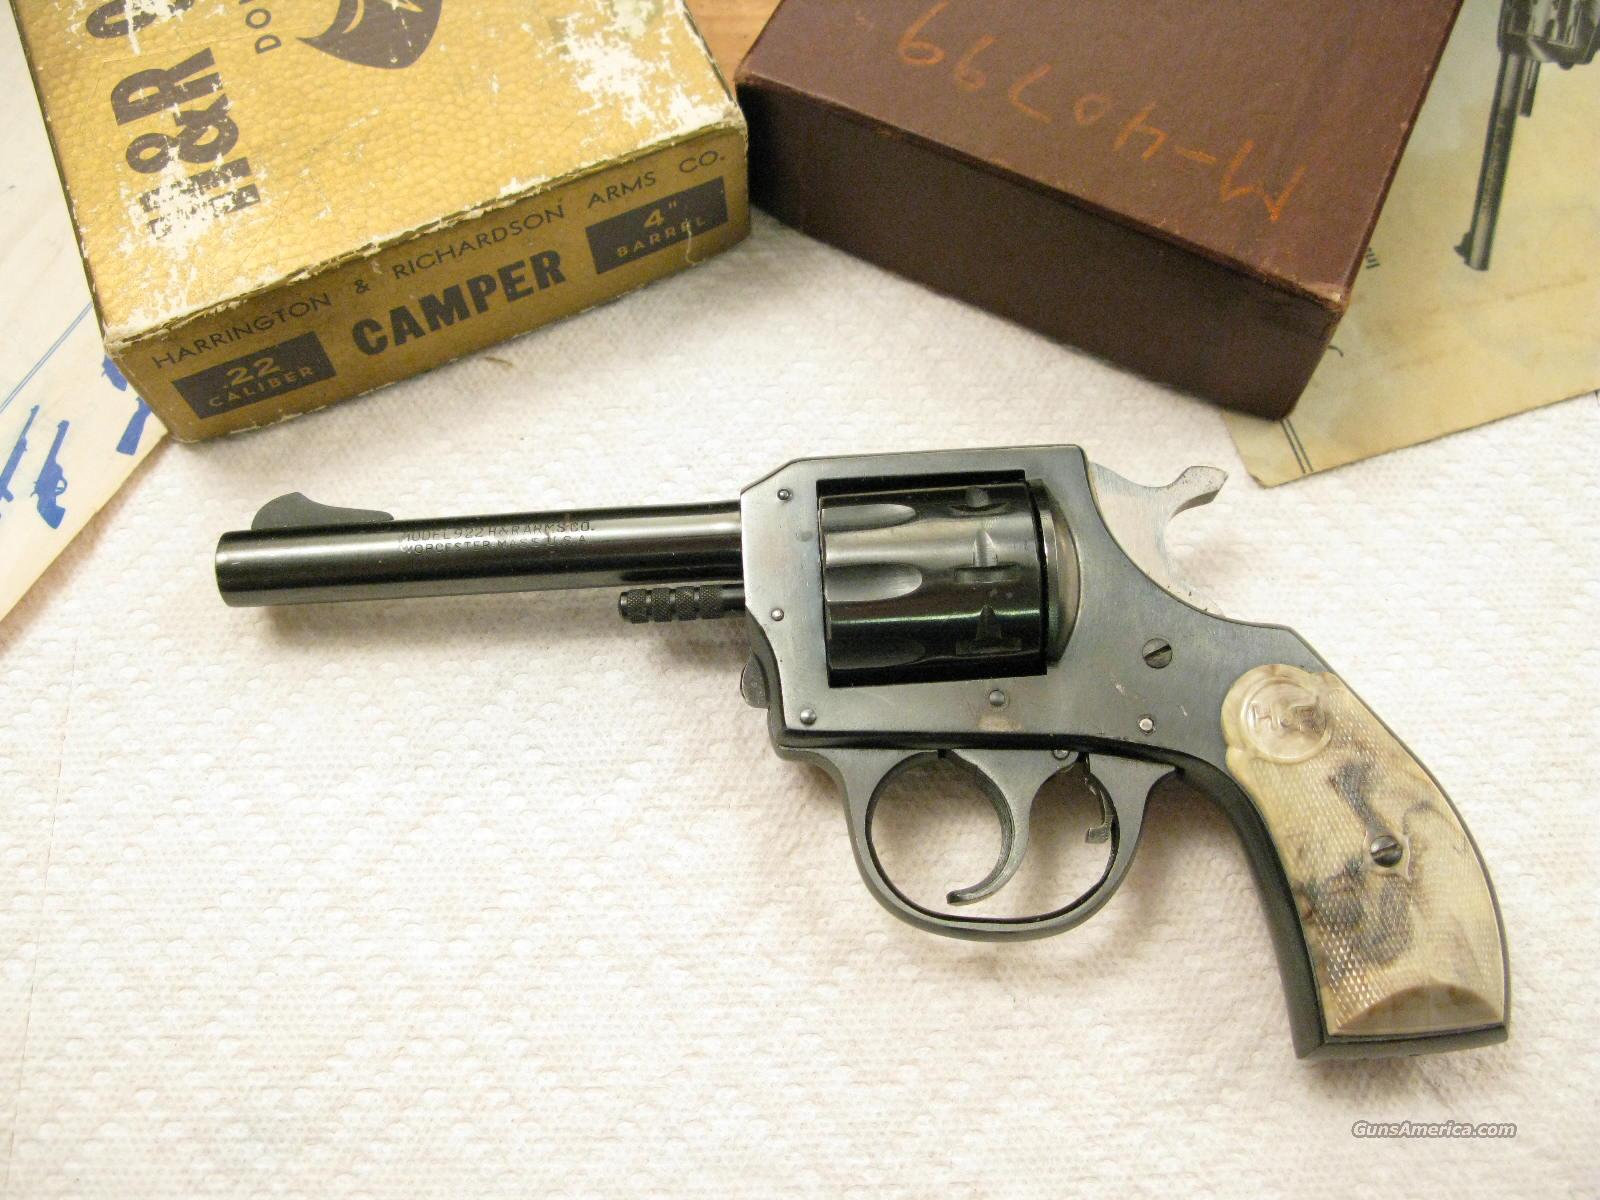 "M-922 4""  .22Lr ""Camper""  9 Shot Original Box   Guns > Pistols > Harrington & Richardson Pistols"